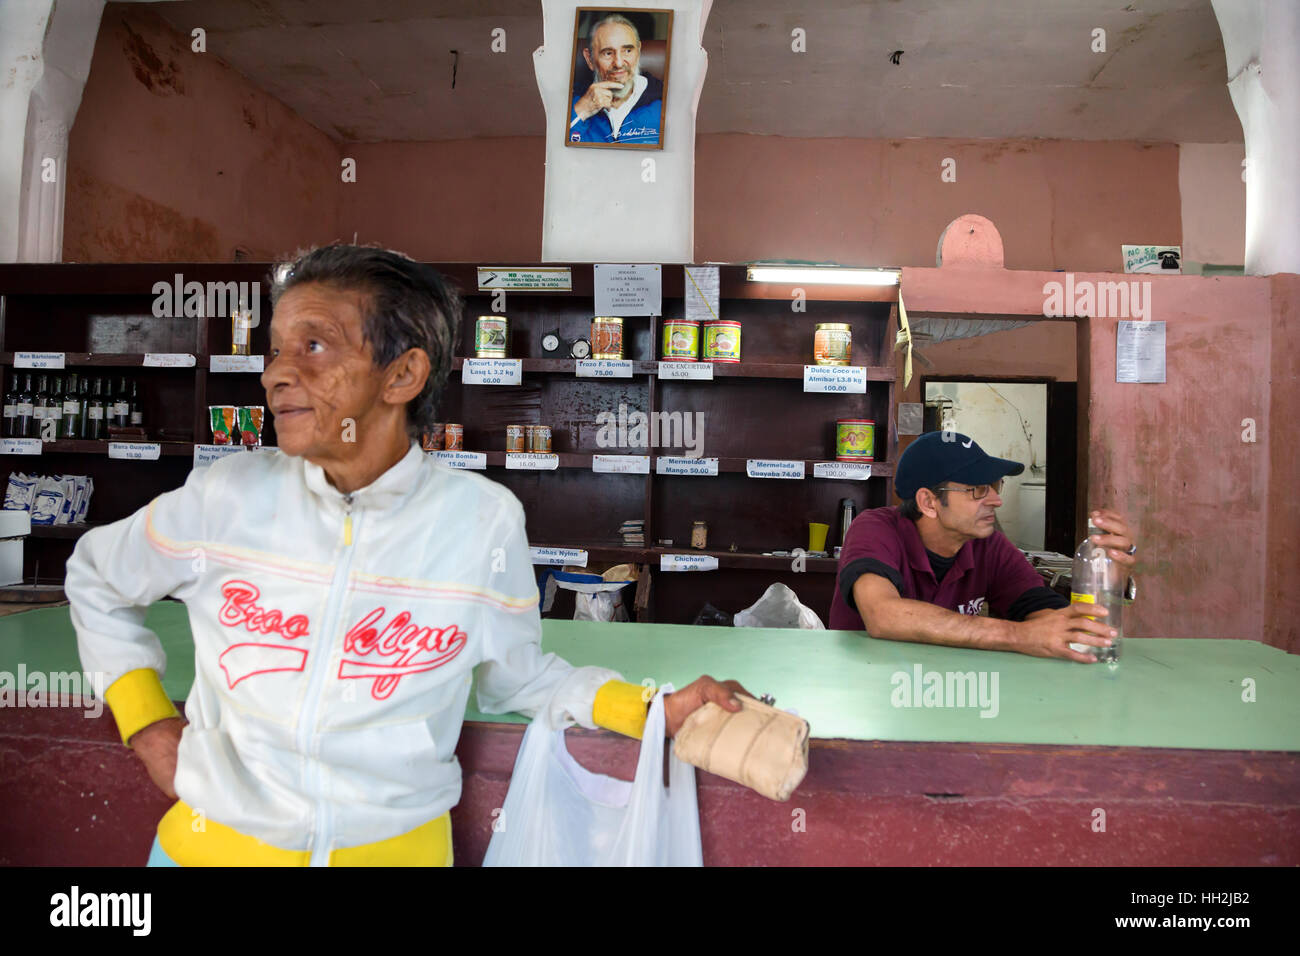 Typical  bodega grocery store in Camaguey, Cuba - Stock Image